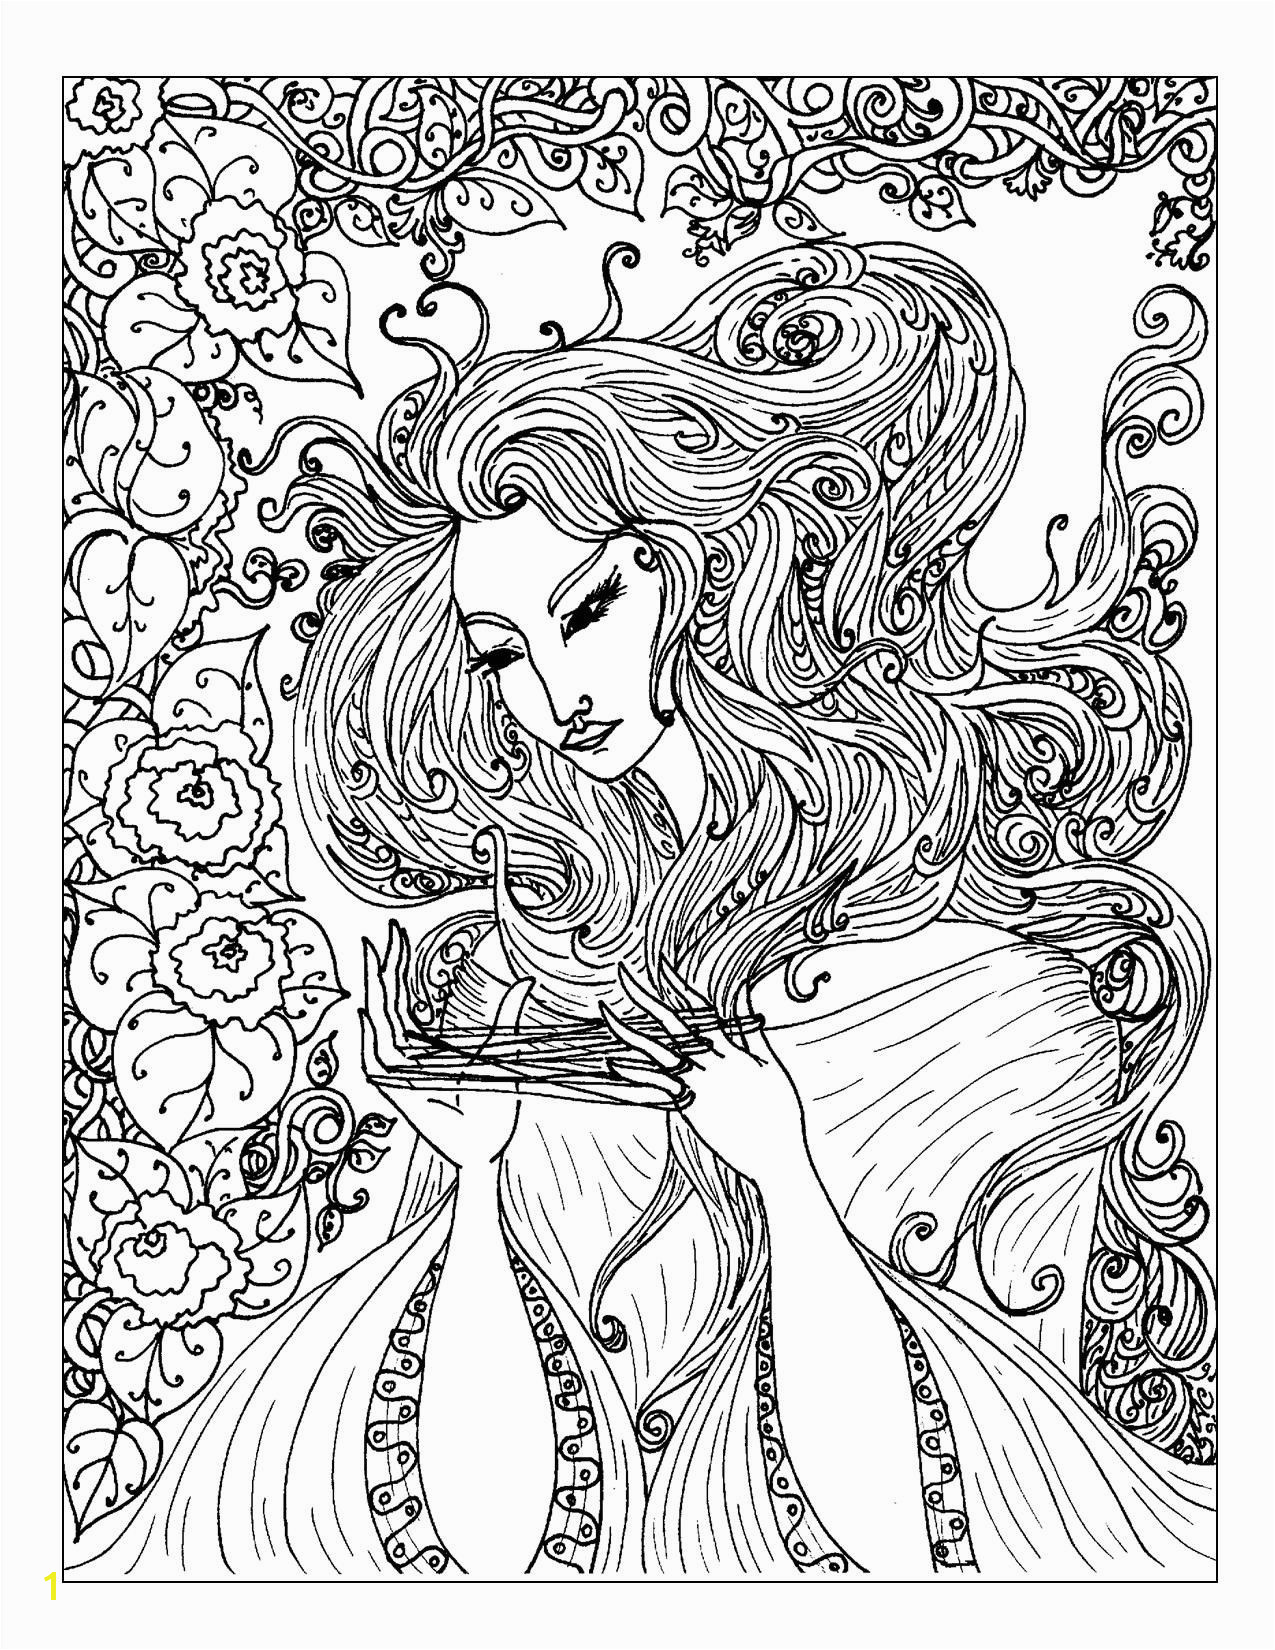 Coloring Pages Hearts for Teenagers Difficult Art Nouveau Coloring Pages S Mac S Place